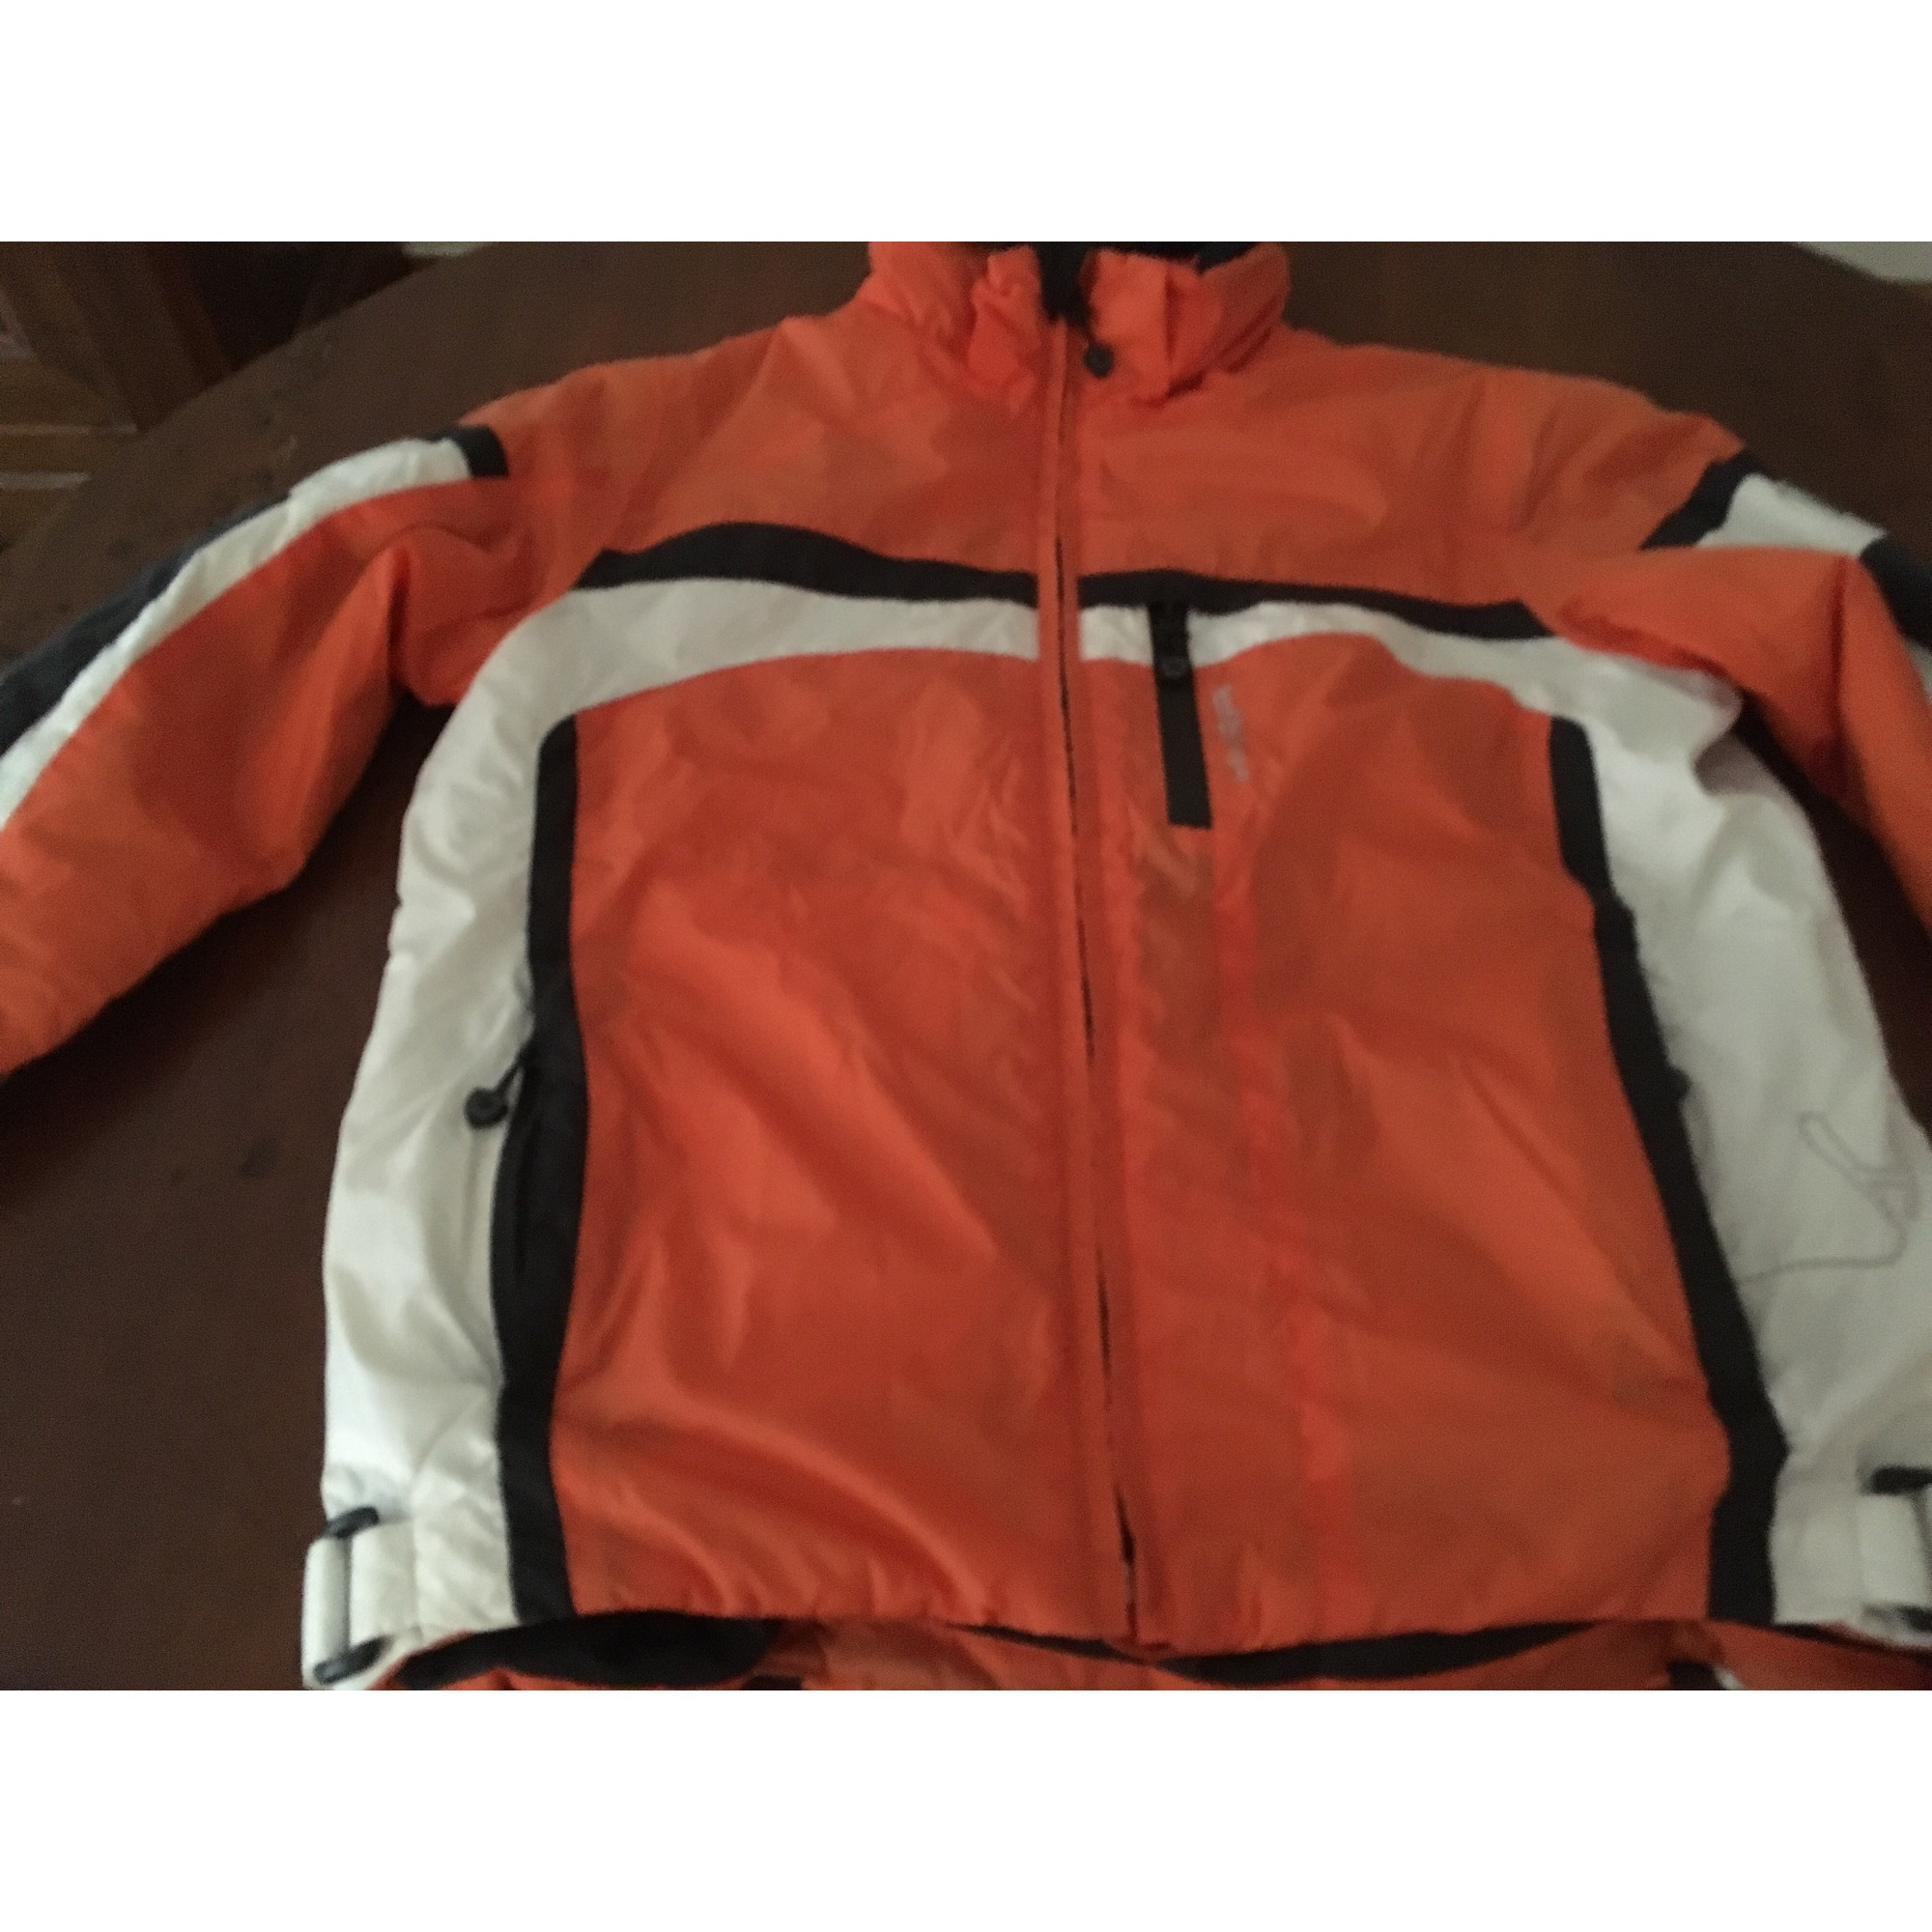 Blouson de ski HYRA Orange